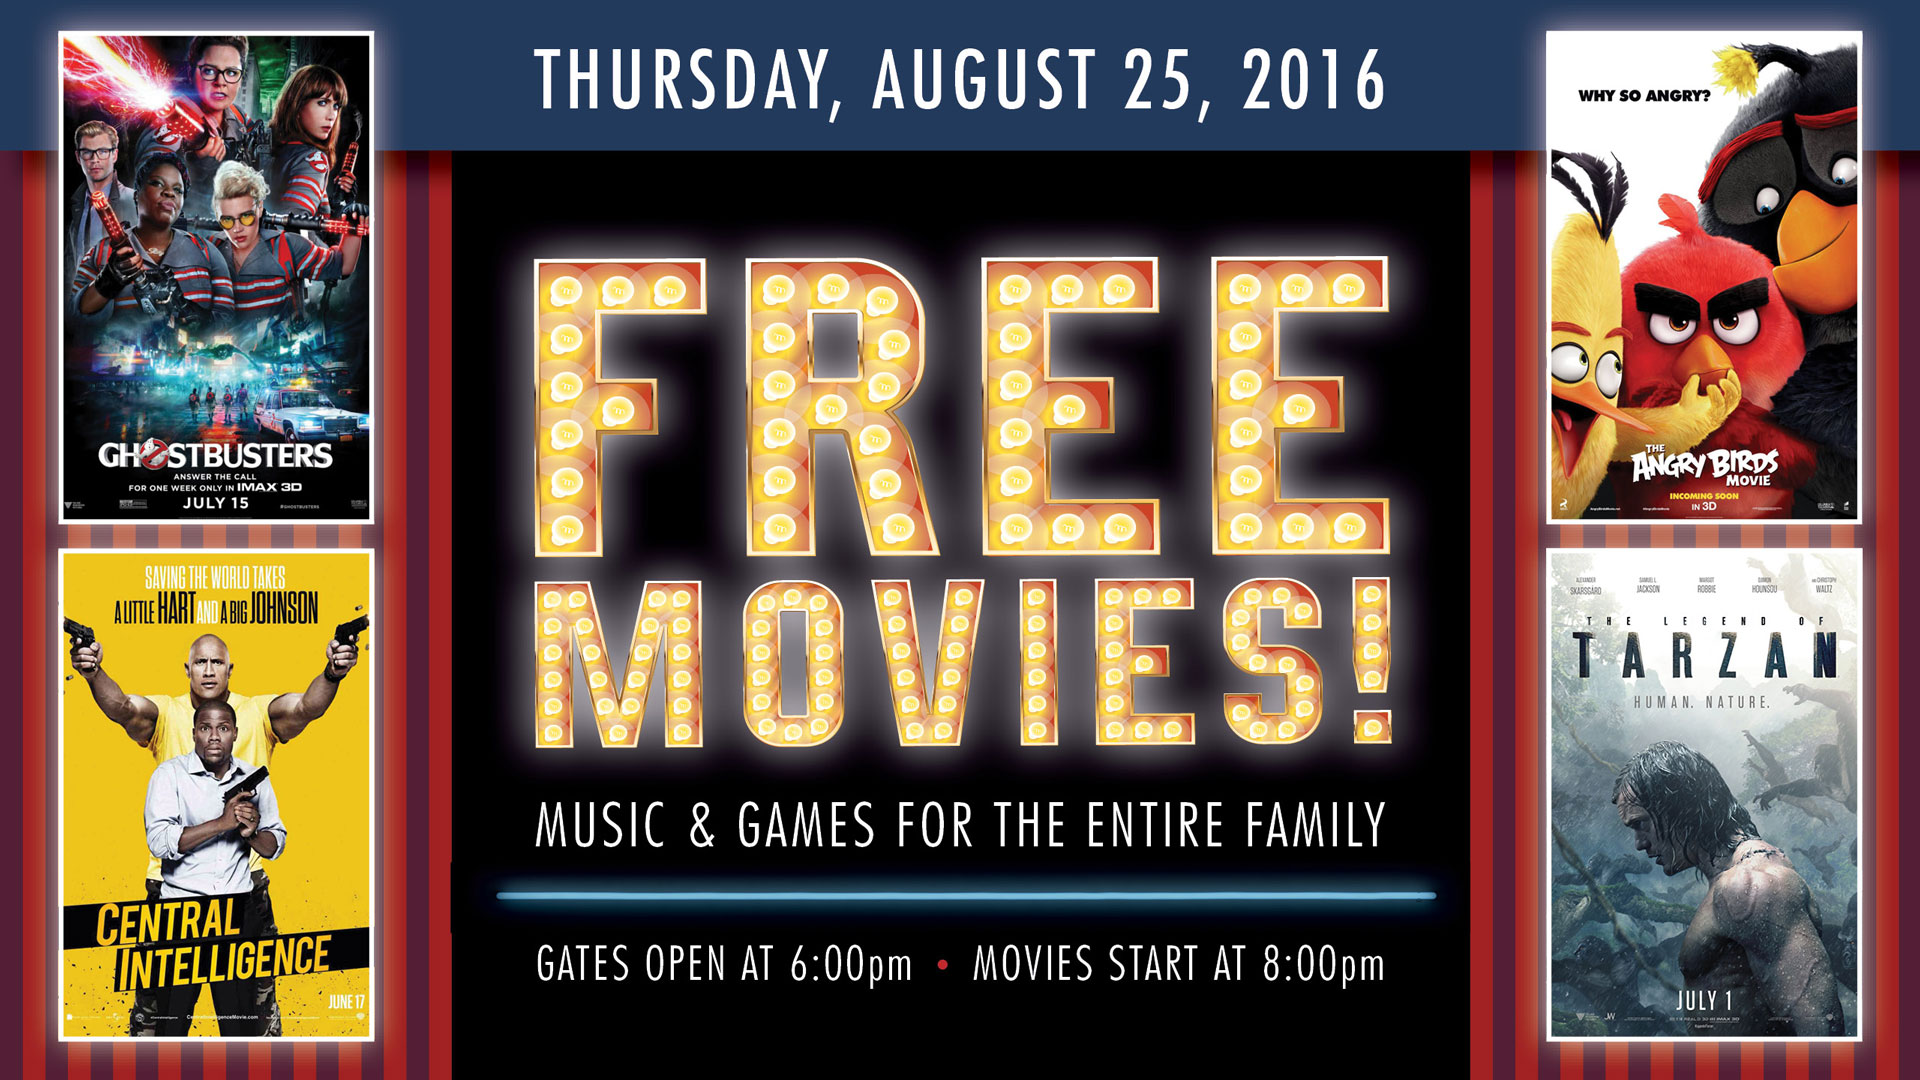 Free Movies at the Drive-In!